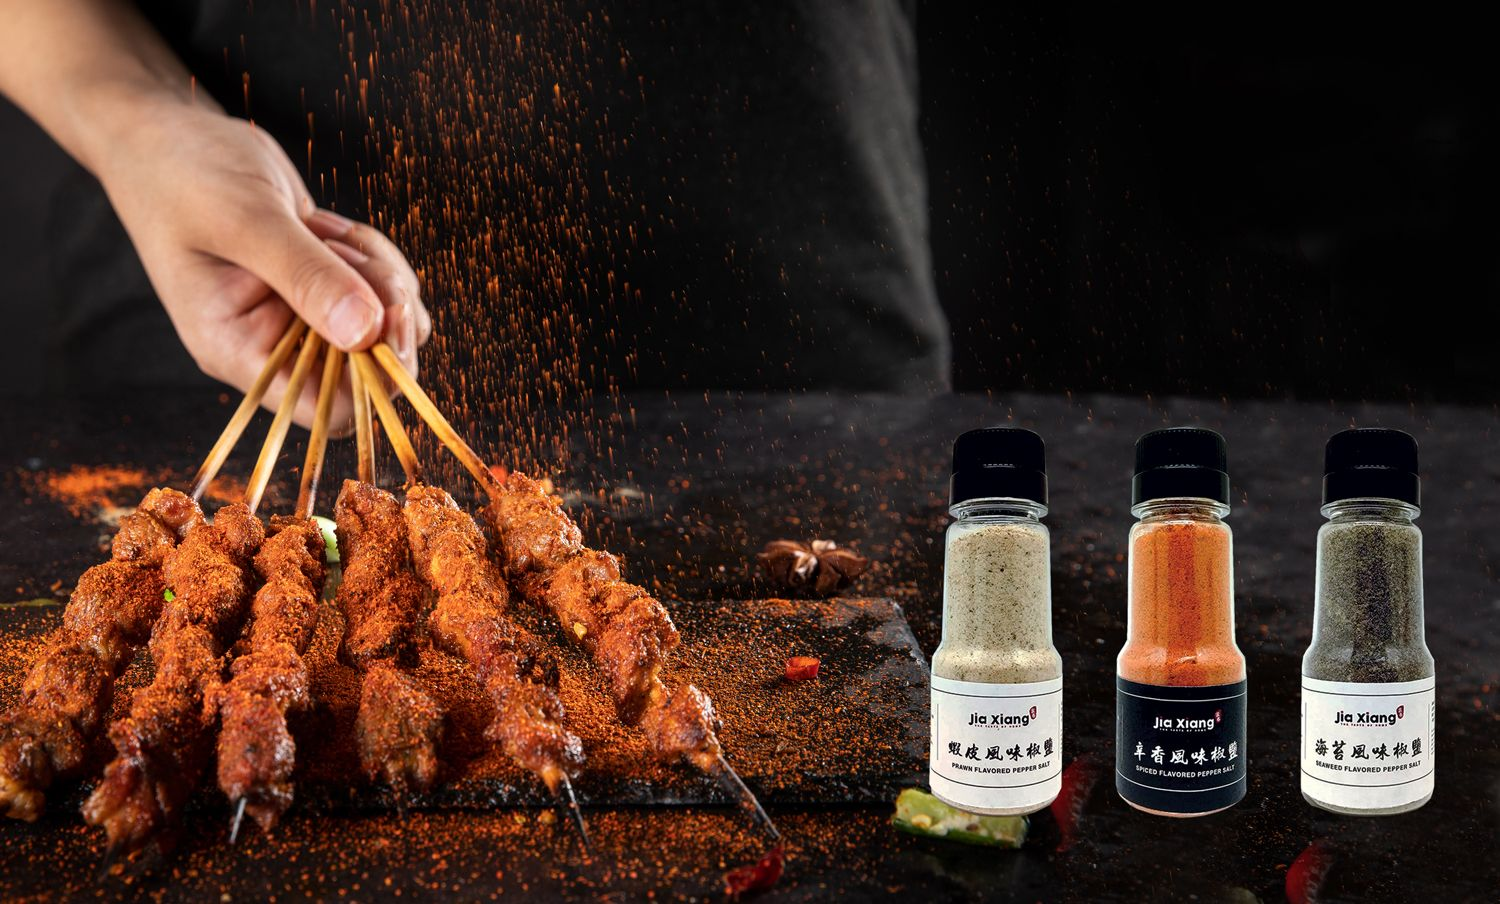 Jia Xiang Official Store Singapore   Flavored Pepper Salt Series